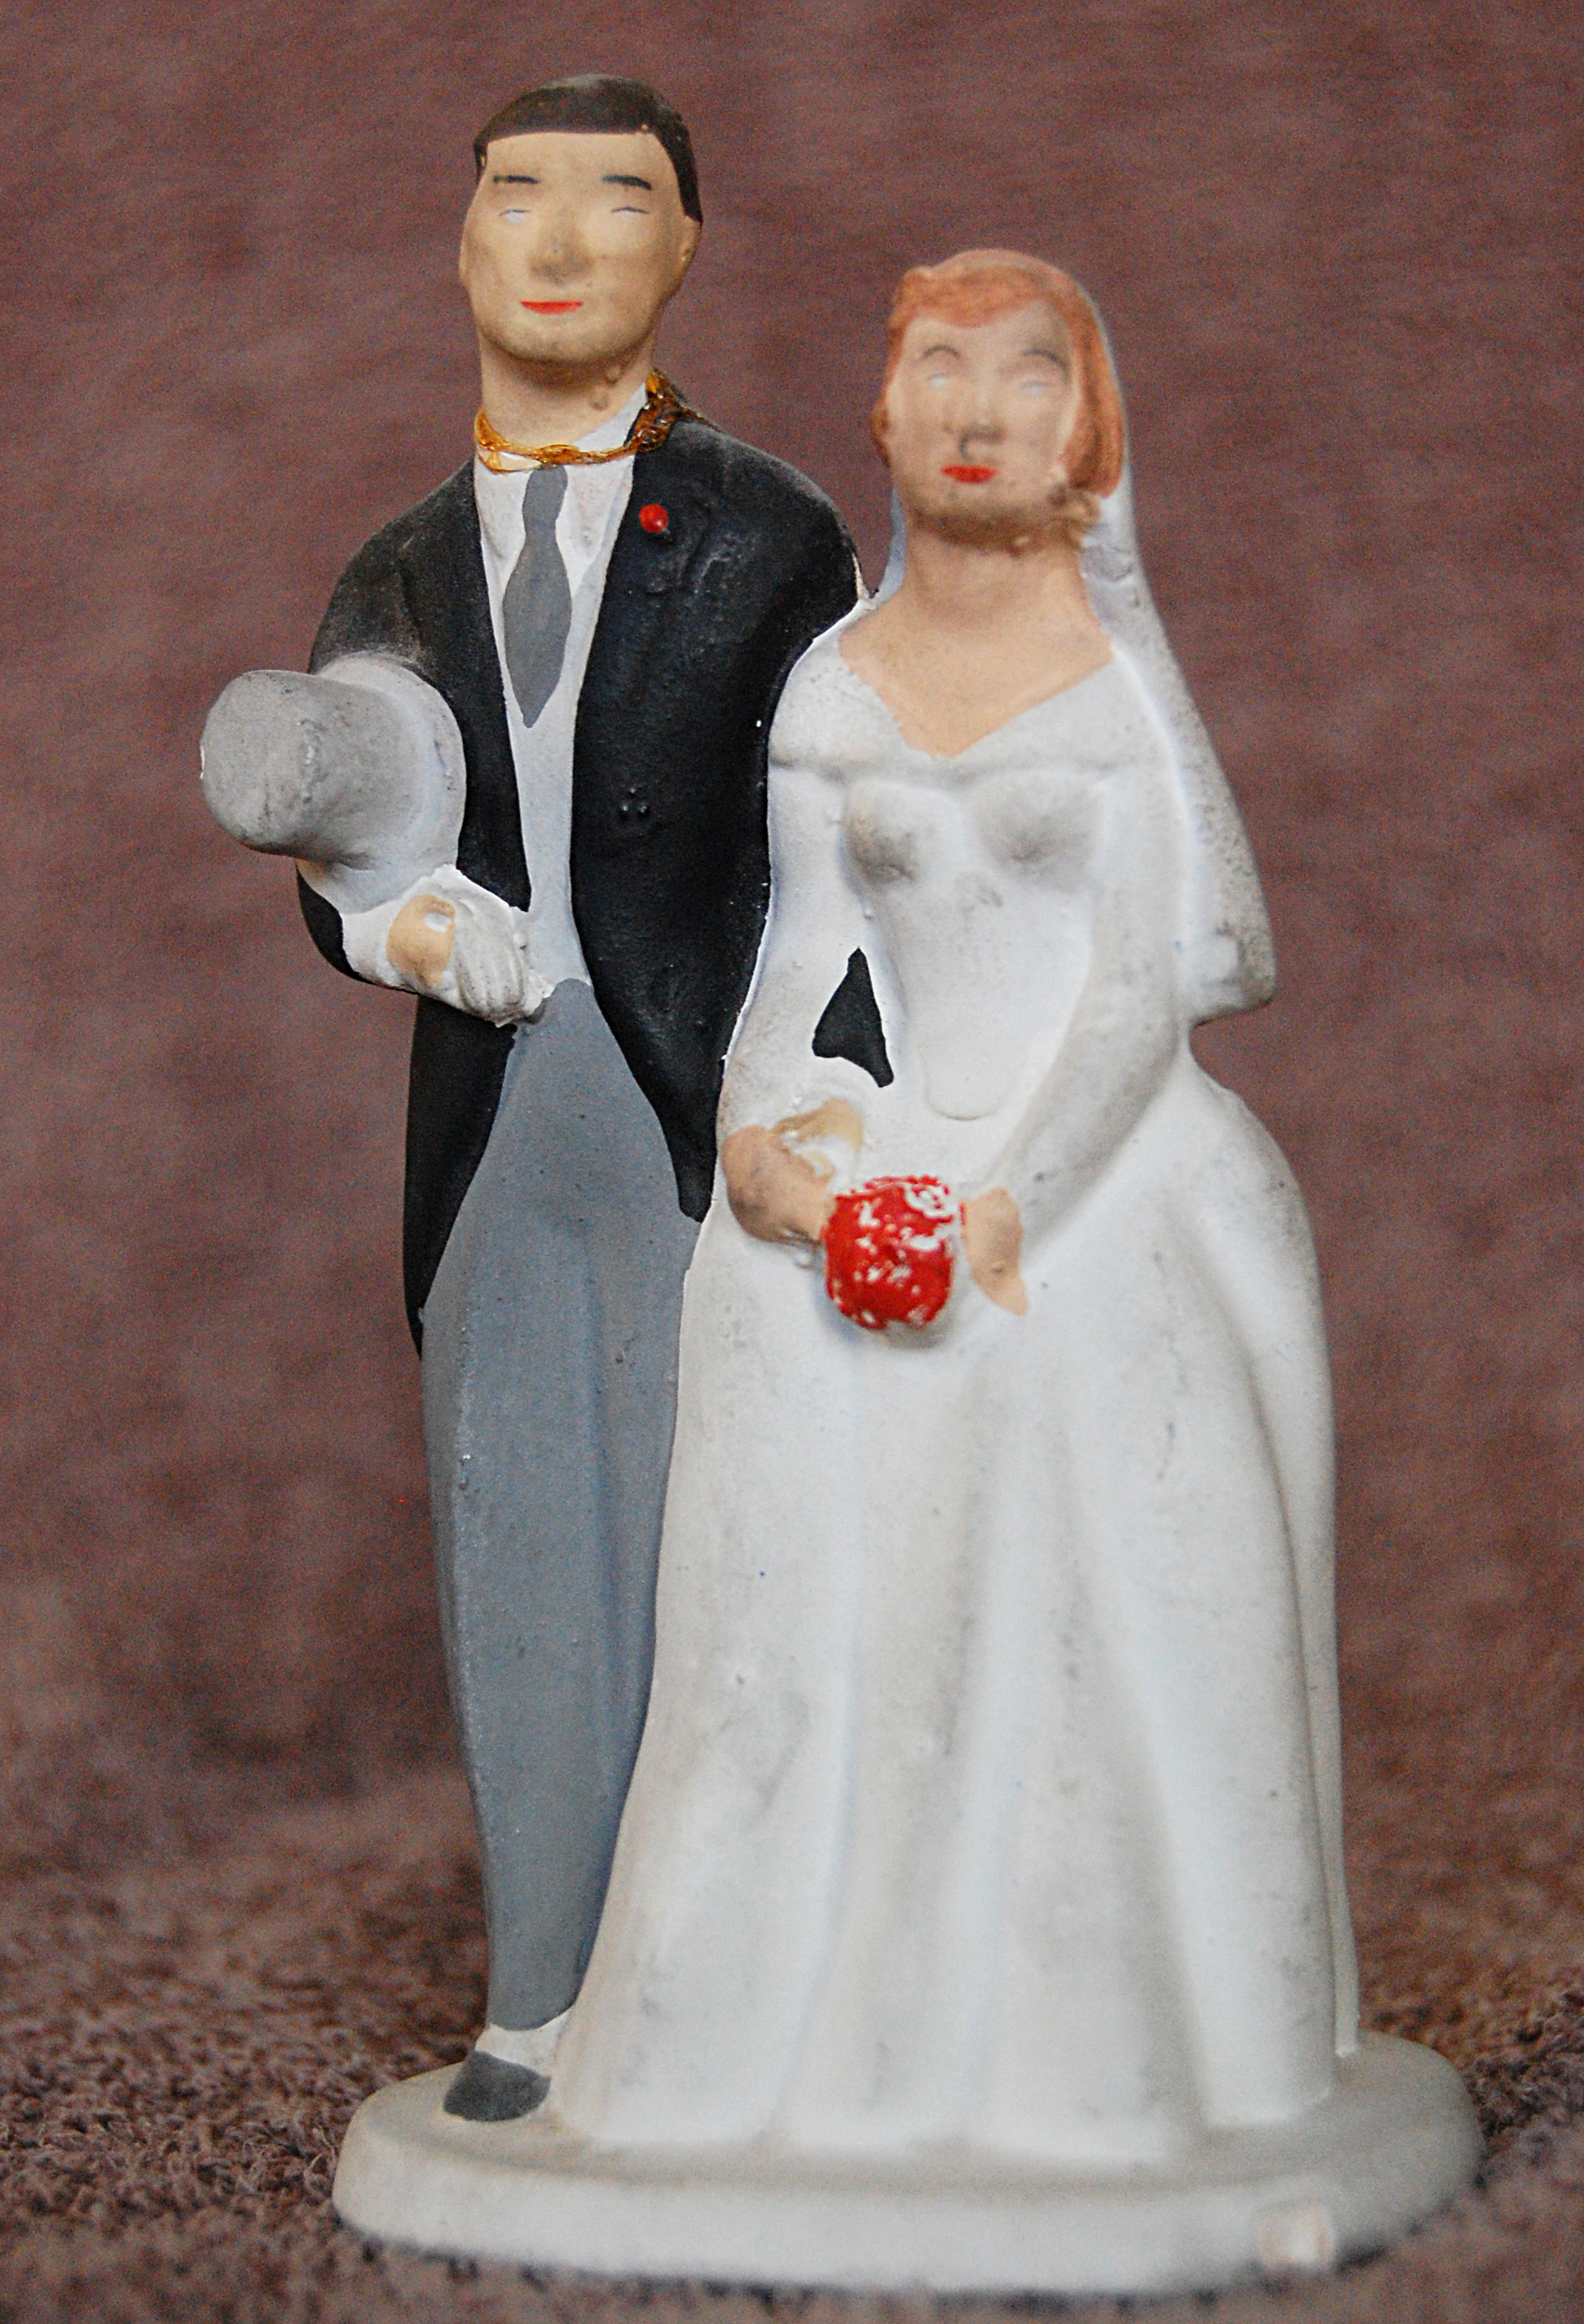 61033d486067 Wedding cake topper - Wikipedia